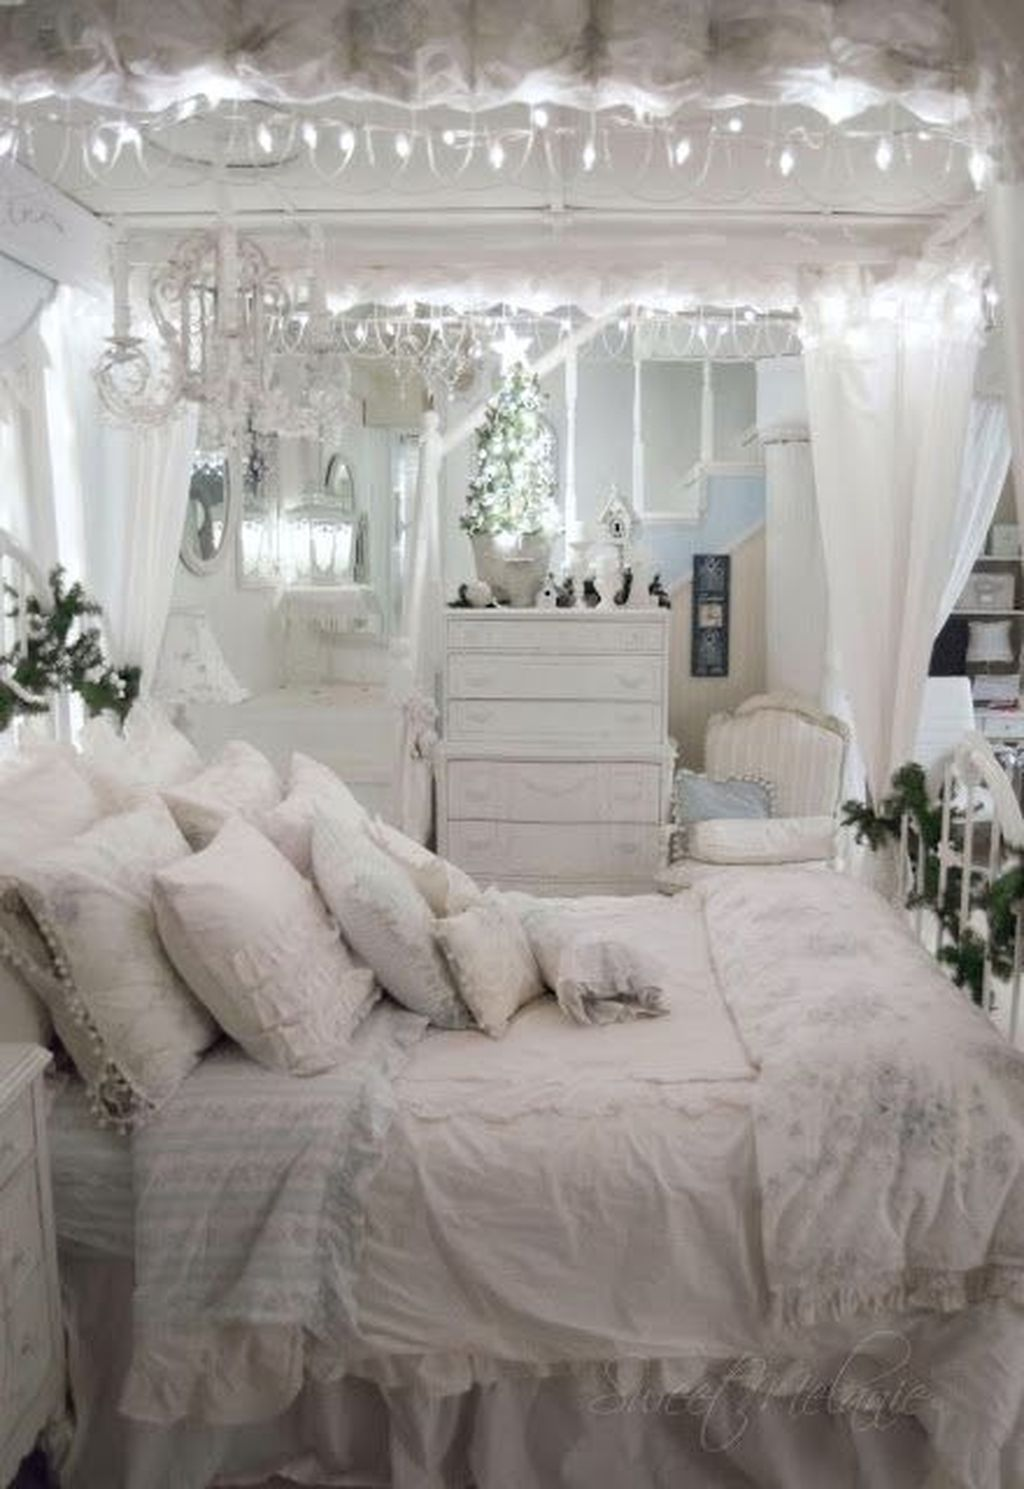 35 Cozy Shabby Chic Bedroom Ideas Modern Shabby Chic Chique